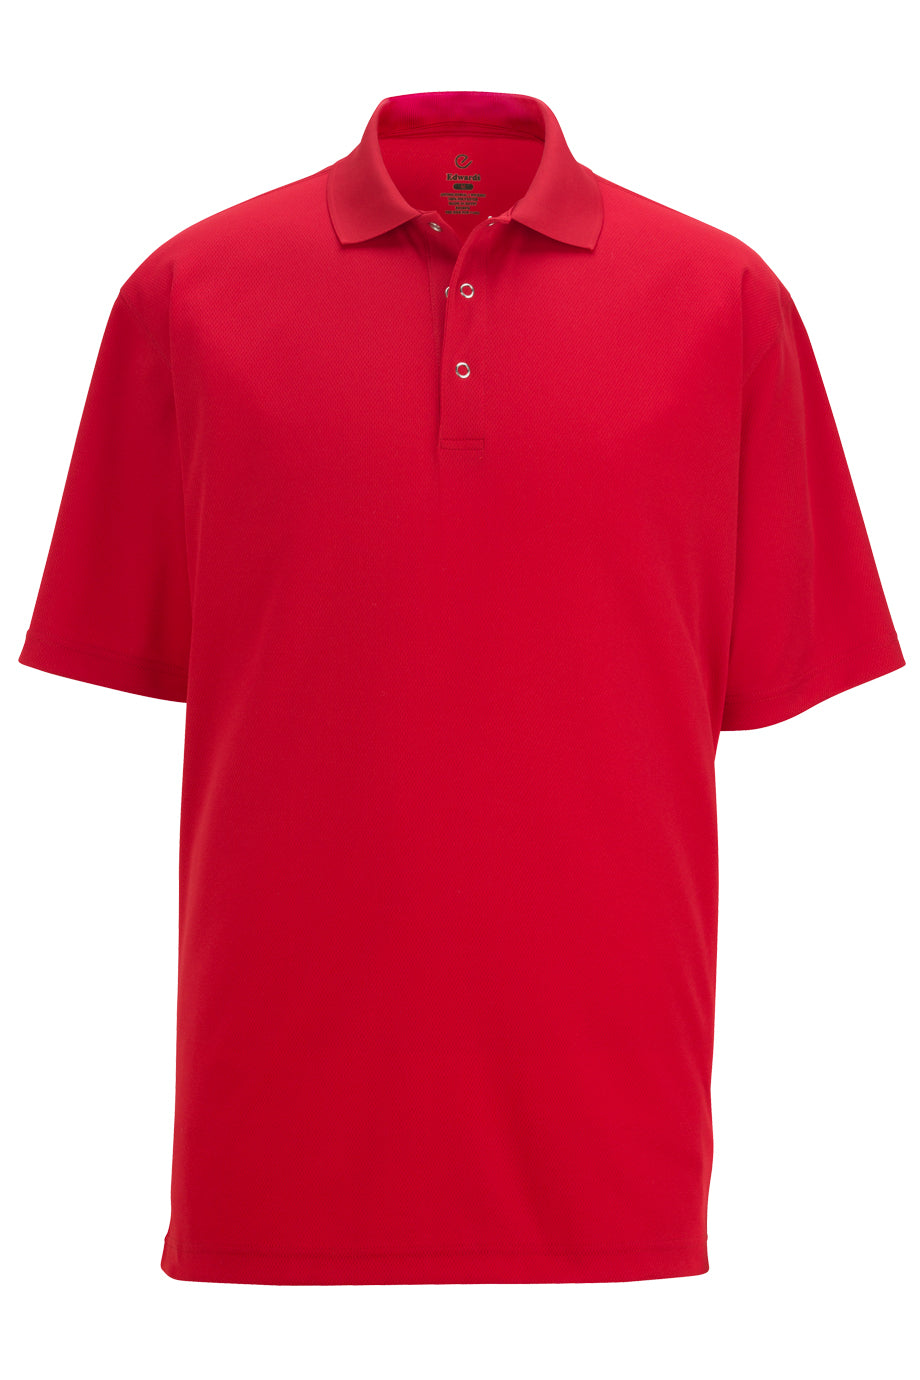 Red Edwards Mens Snap Front Hi-Performance Short Sleeve Polo